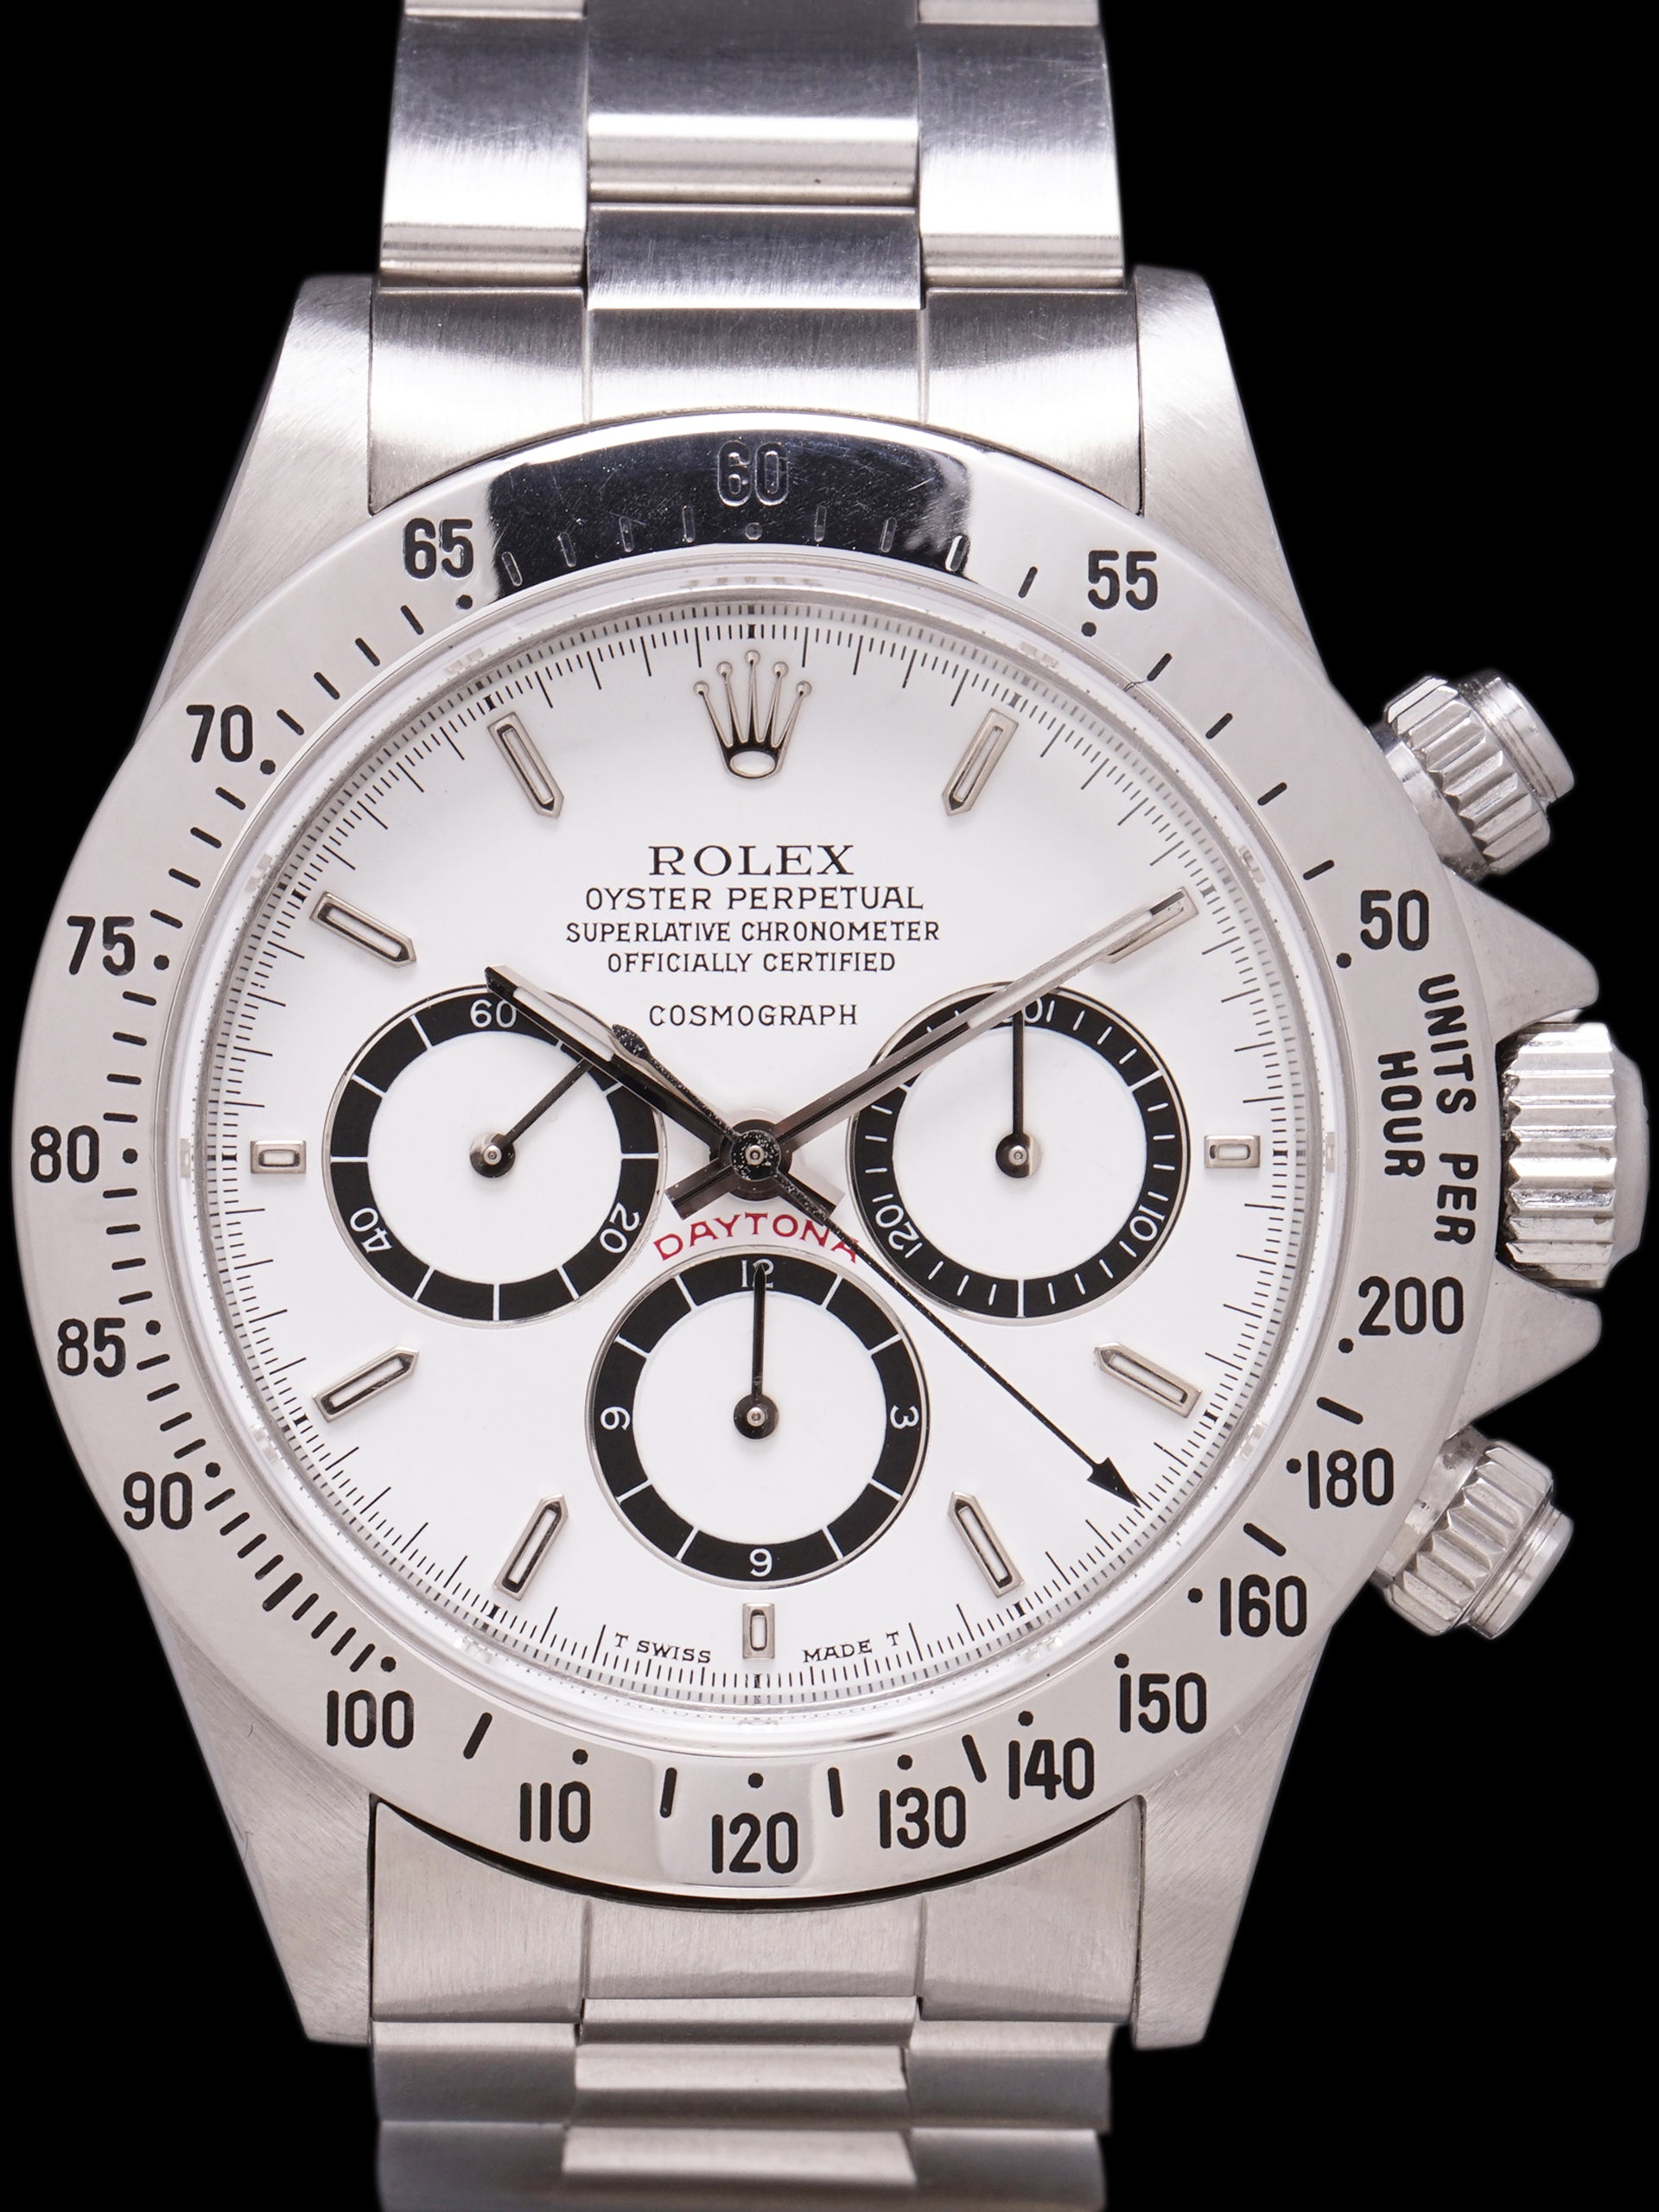 "*Unpolished* R-Serial 1988 Rolex Zenith Daytona (Ref. 16520) Mk. I ""Floating Cosmograph"" W/ Box, Papers & RSC Paper"